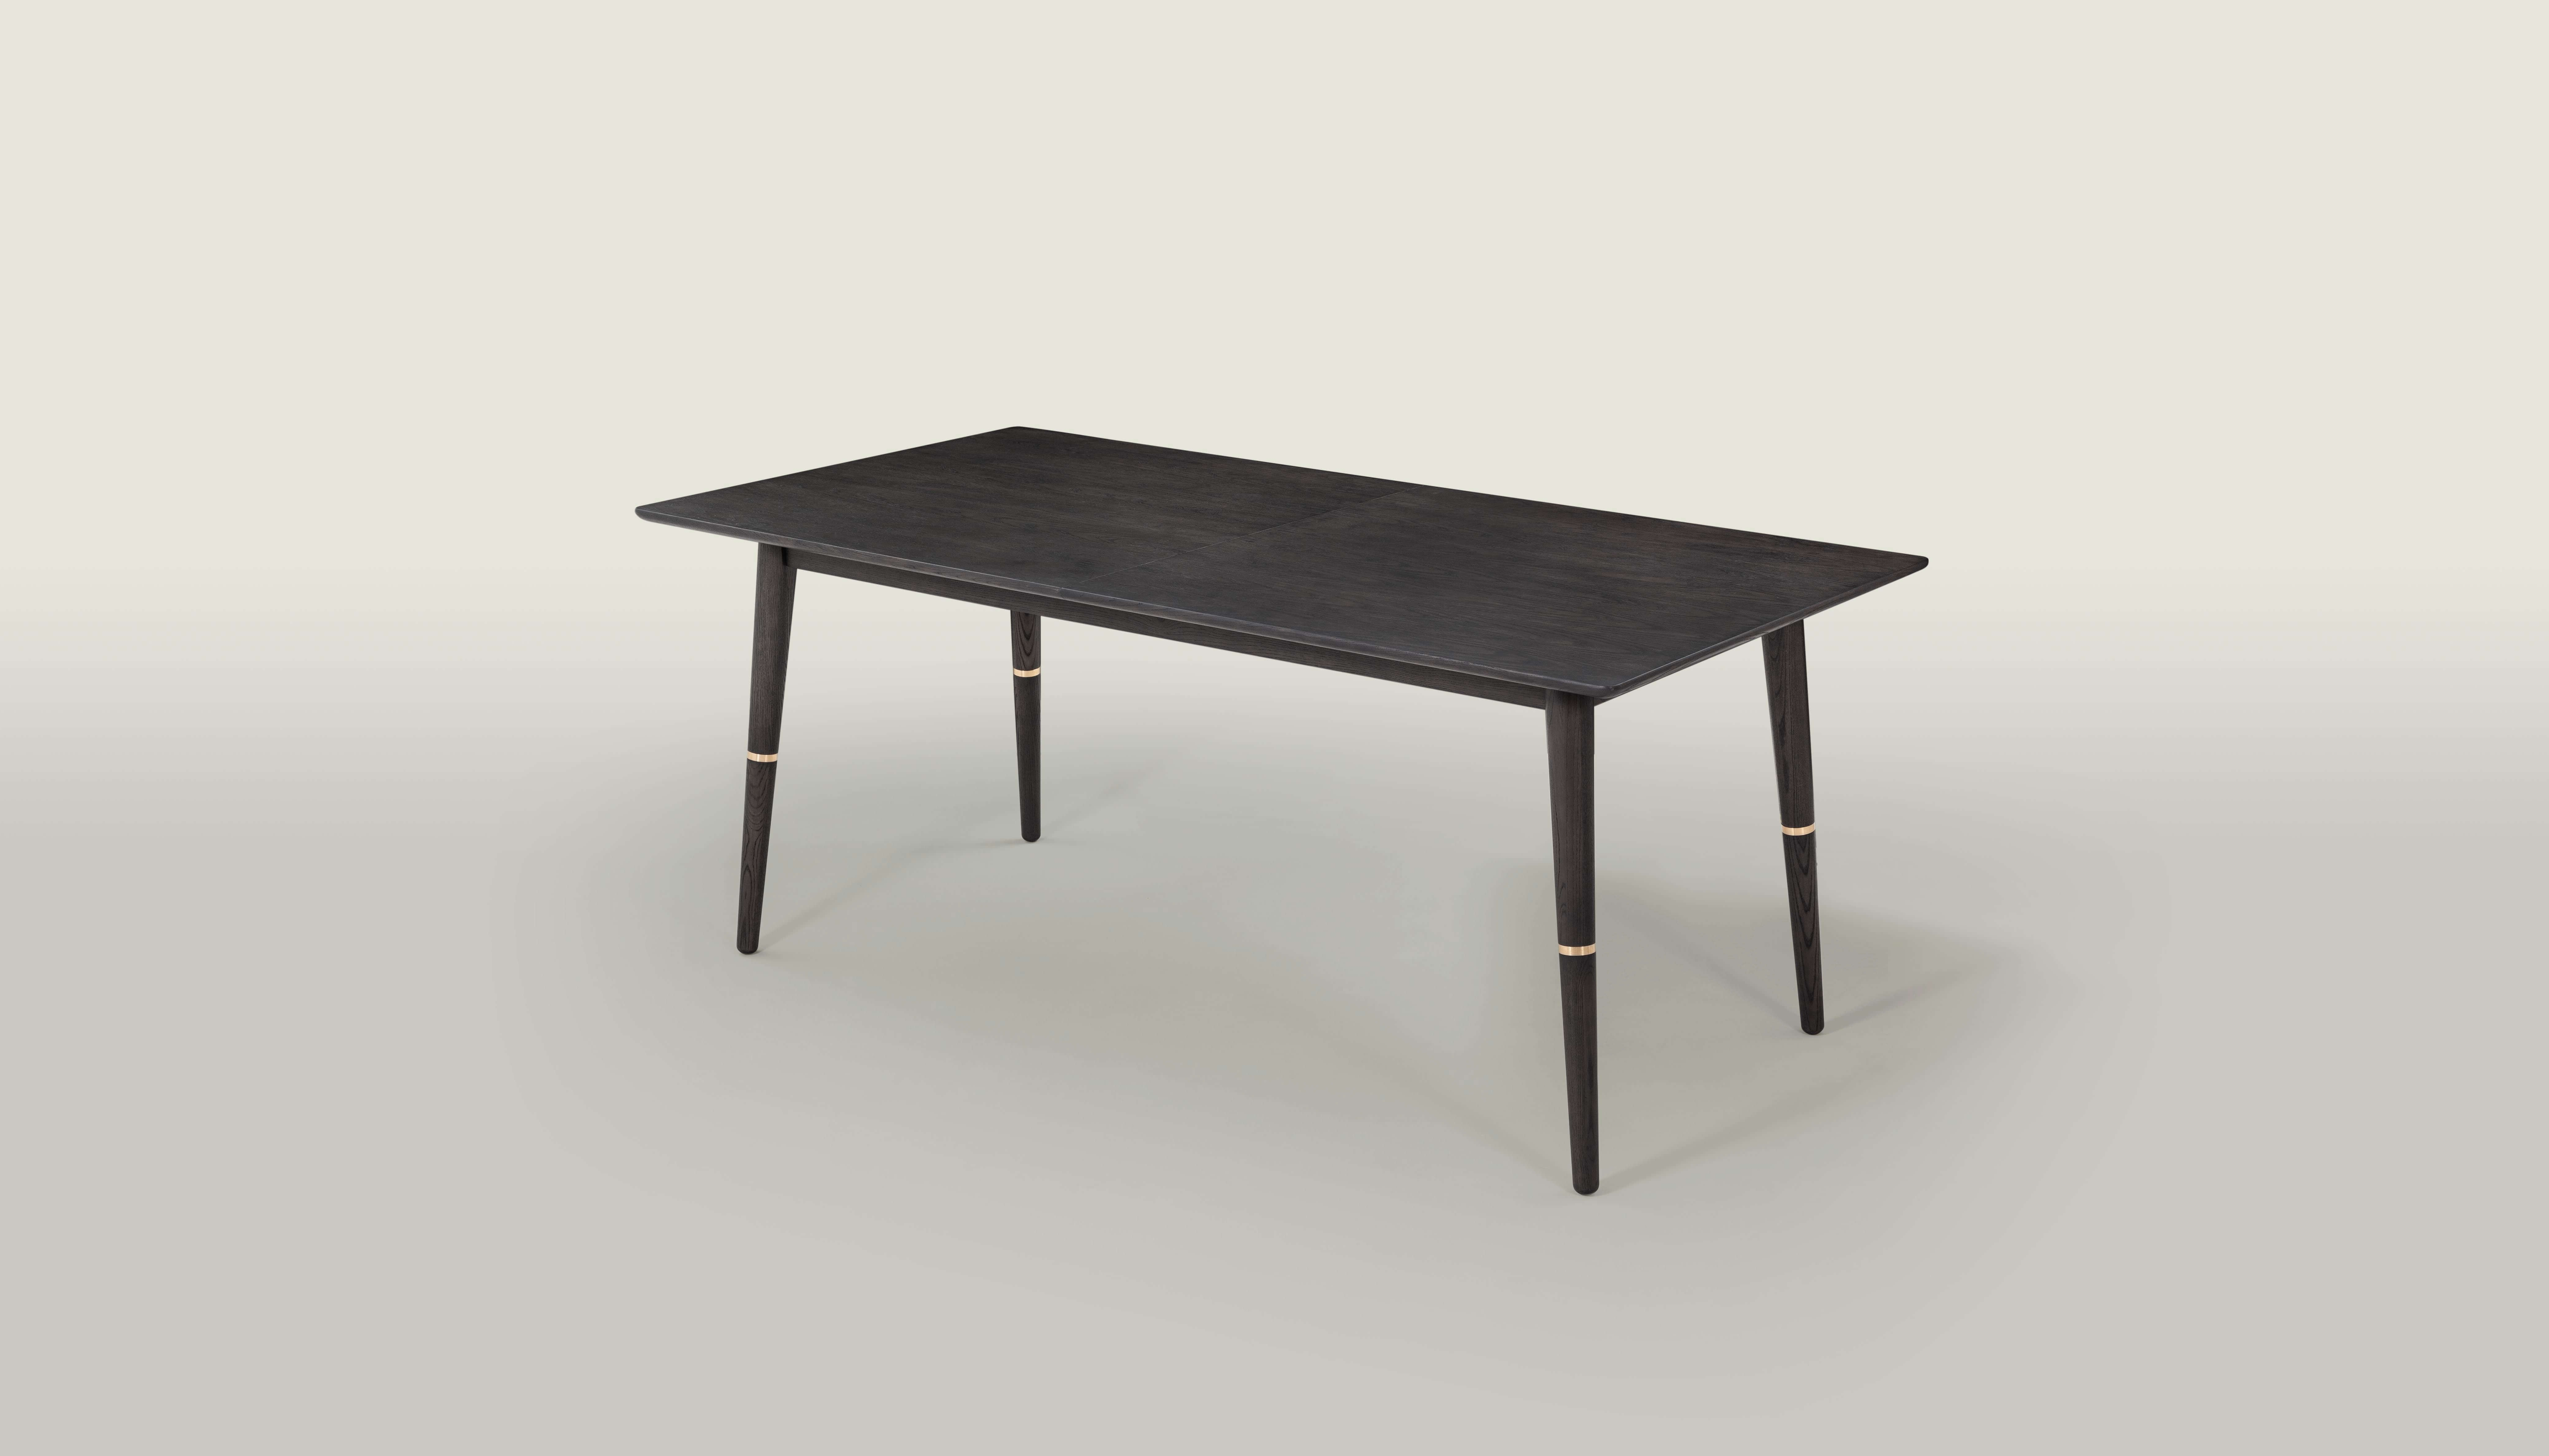 Preferred Extendable Dining Table – Del Mar – Black And Gold – Pma In Square Extendable Dining Tables (View 19 of 25)